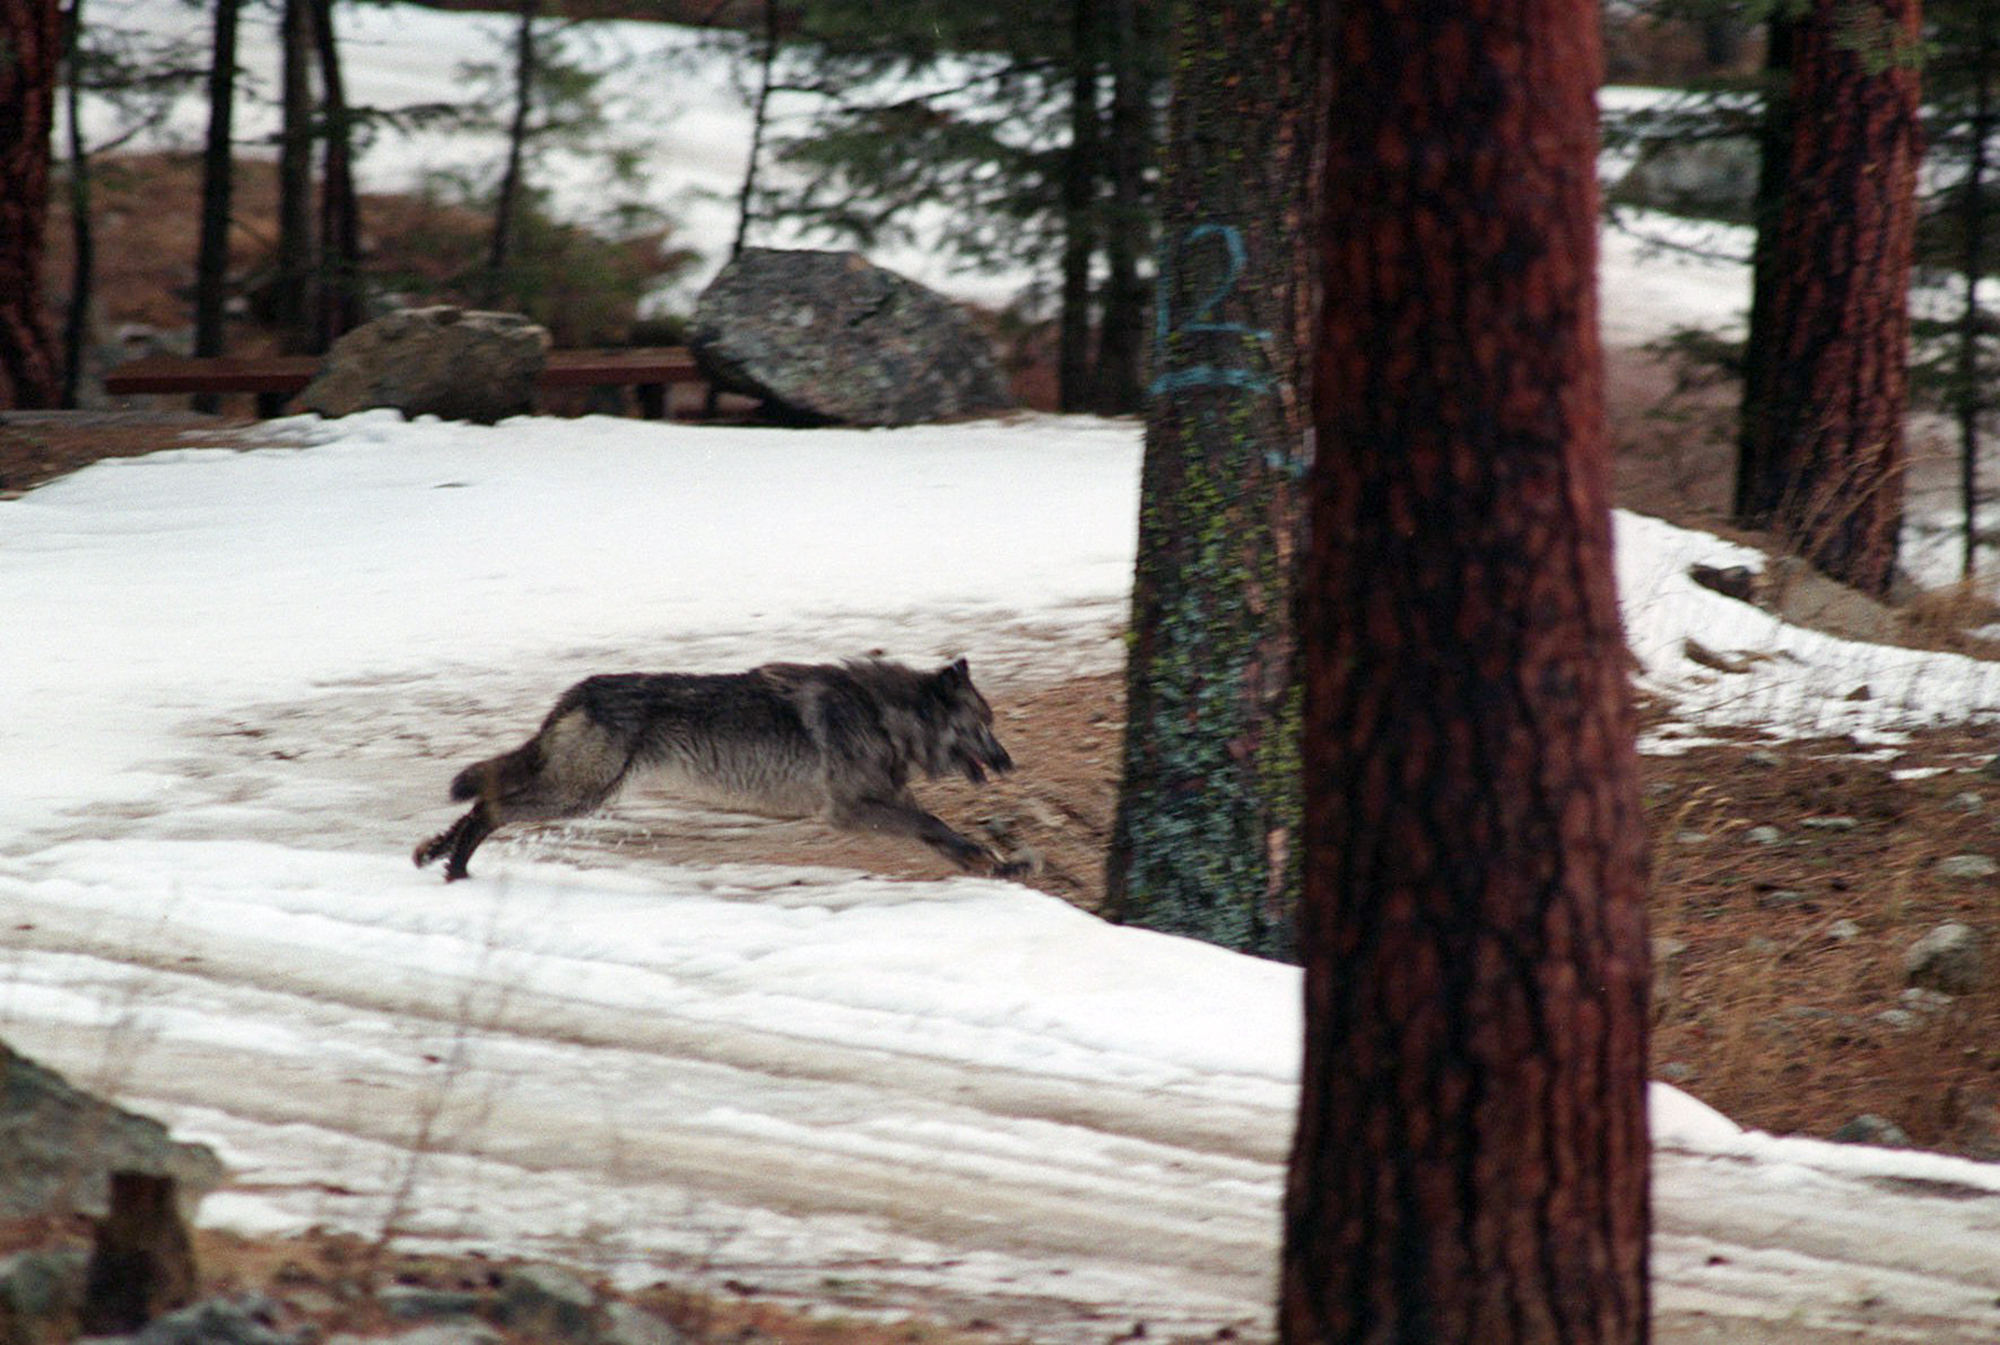 In this Jan. 14, 1995, file photo, a wolf leaps across a road into the wilds of central Idaho. On Tuesday, April 27, 2021, the Idaho House approved legislation allowing the state to hire private contractors and expand methods to kill wolves roaming Idaho, a measure that could cut the wolf population by 90%. (AP Photo/Douglas Pizac, File)